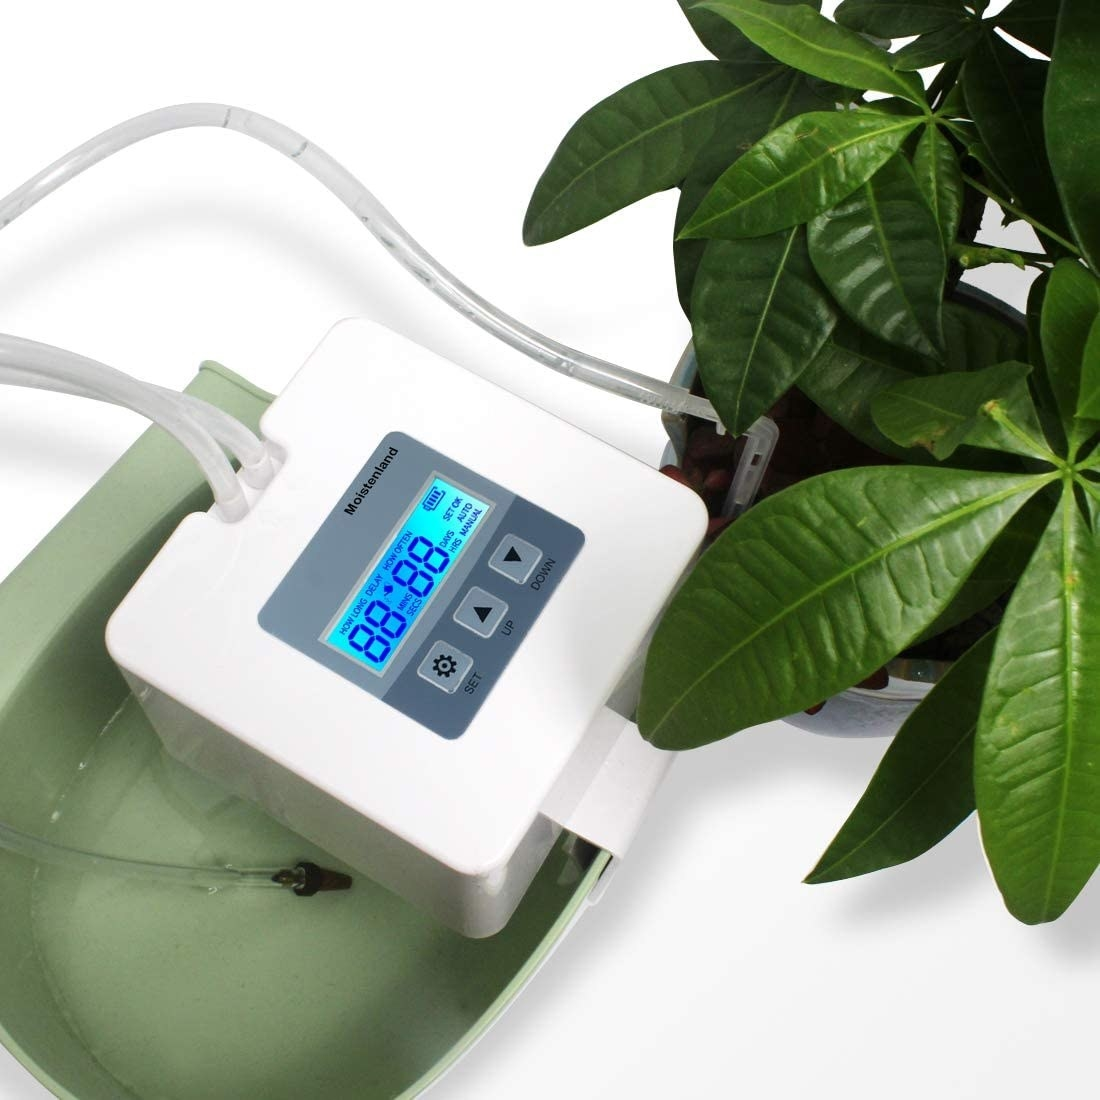 The irrigation system with its tube in a plant pot